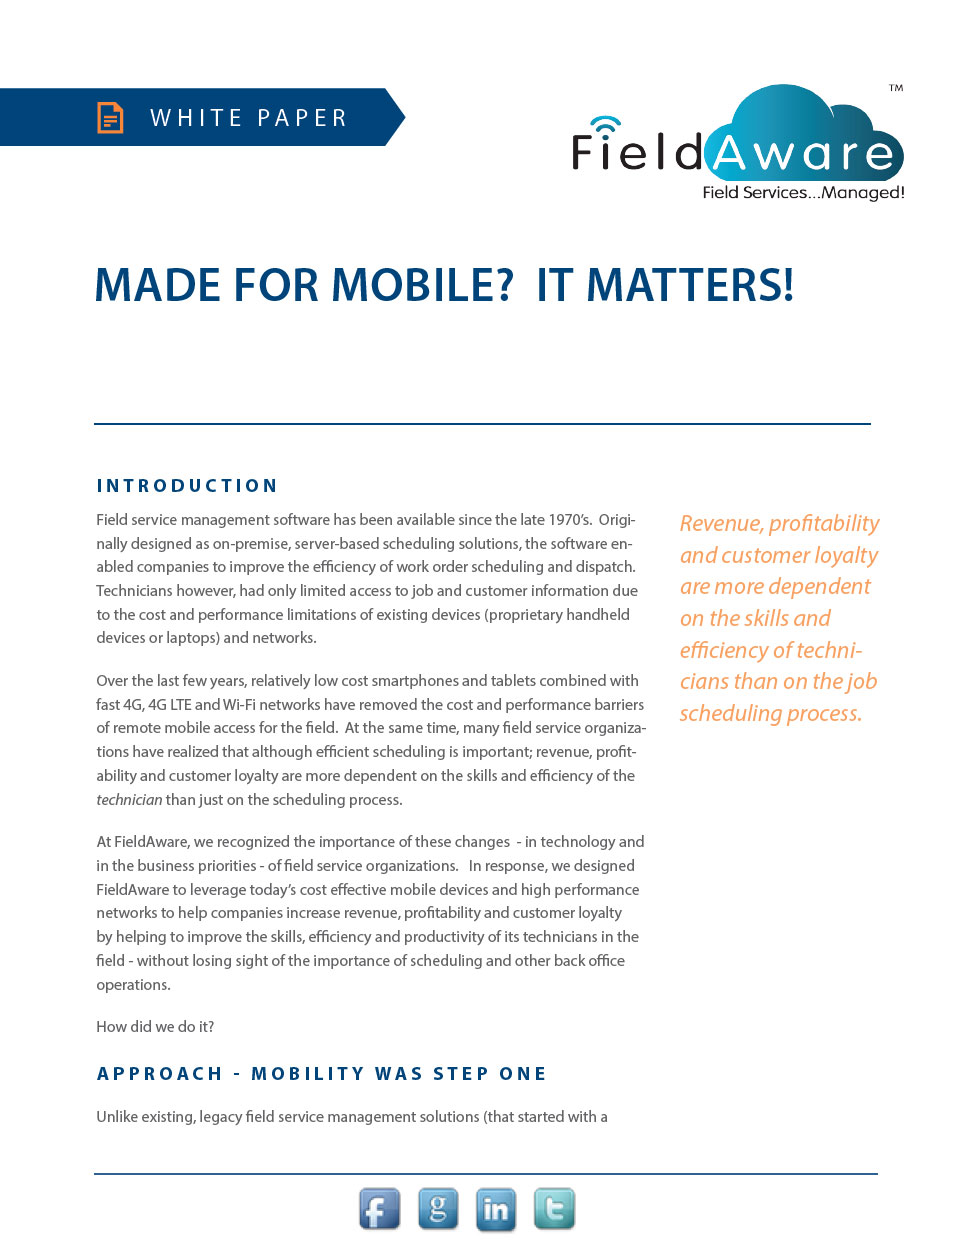 Made for Mobile? It Matters! White Paper